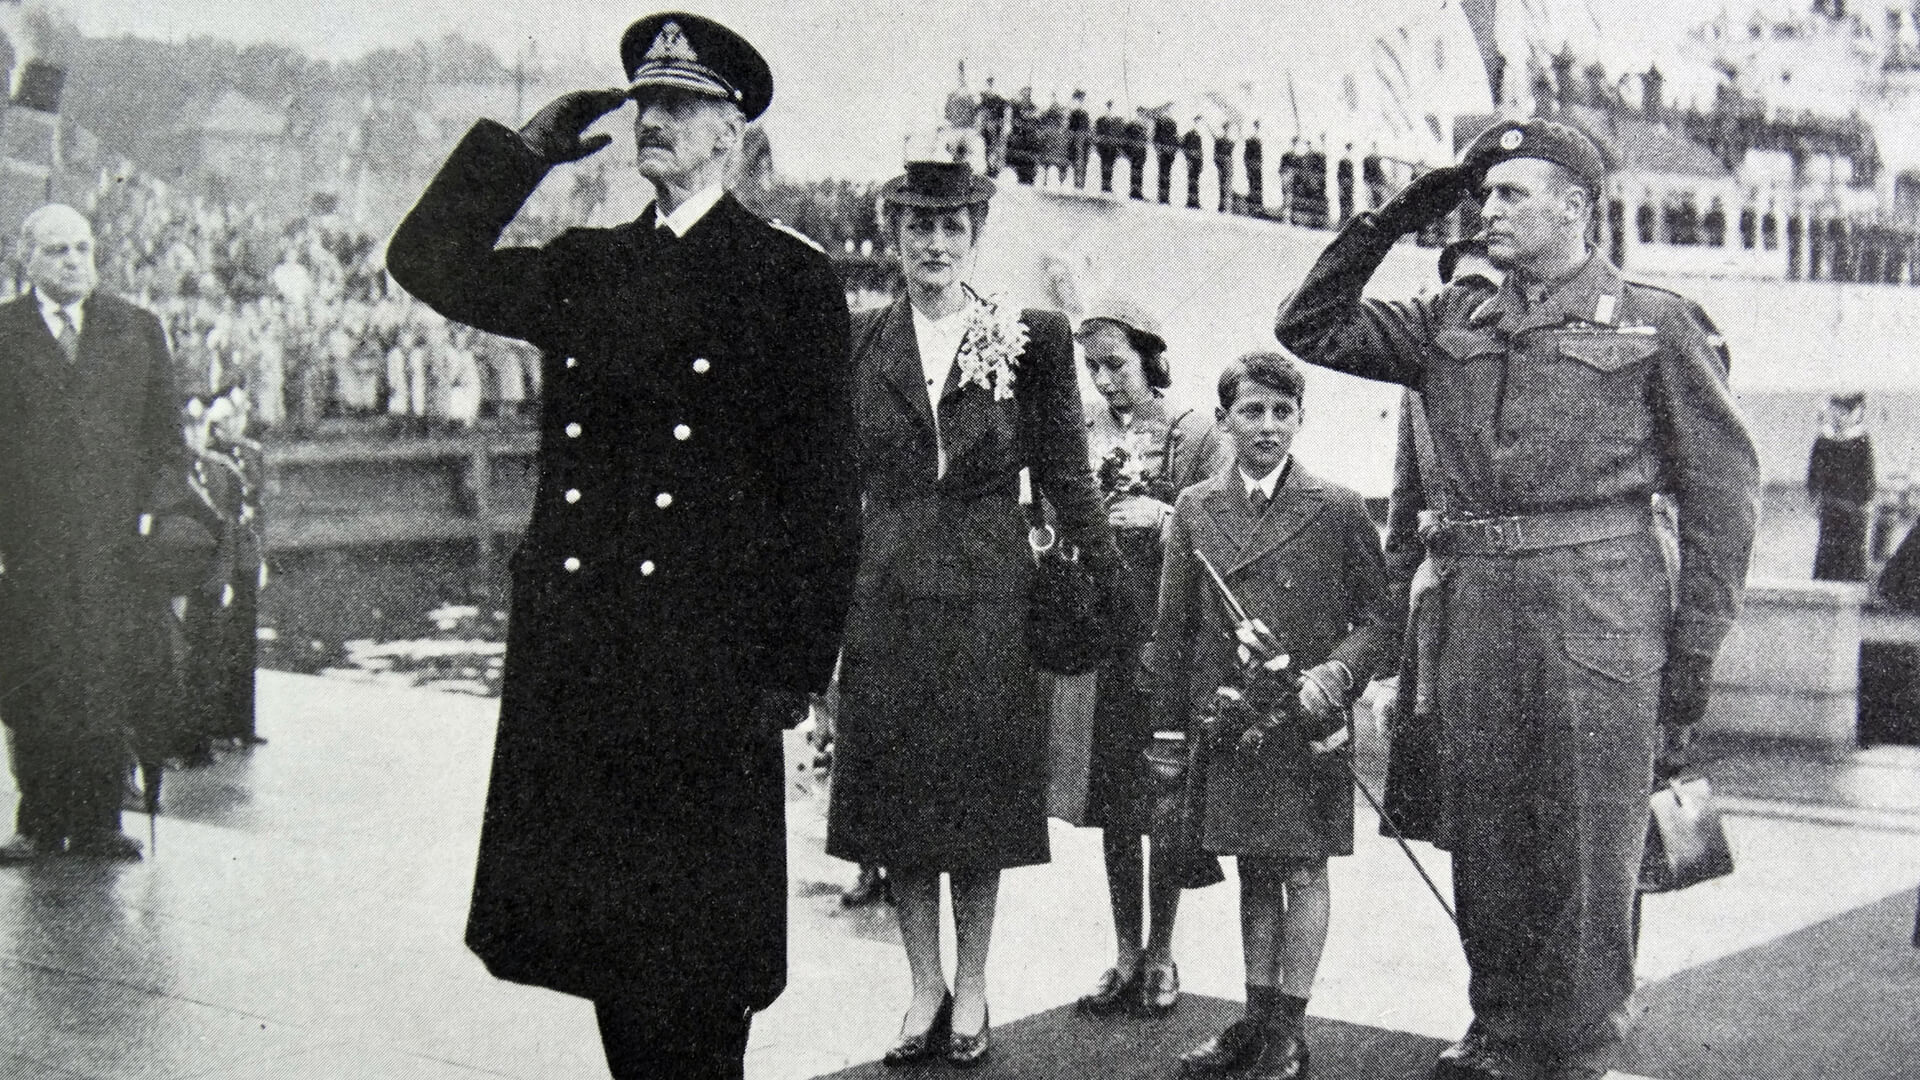 King Haakon, Crown Princess Martha, Crown Prince Olav and their children return to a liberated Norway after WW II.